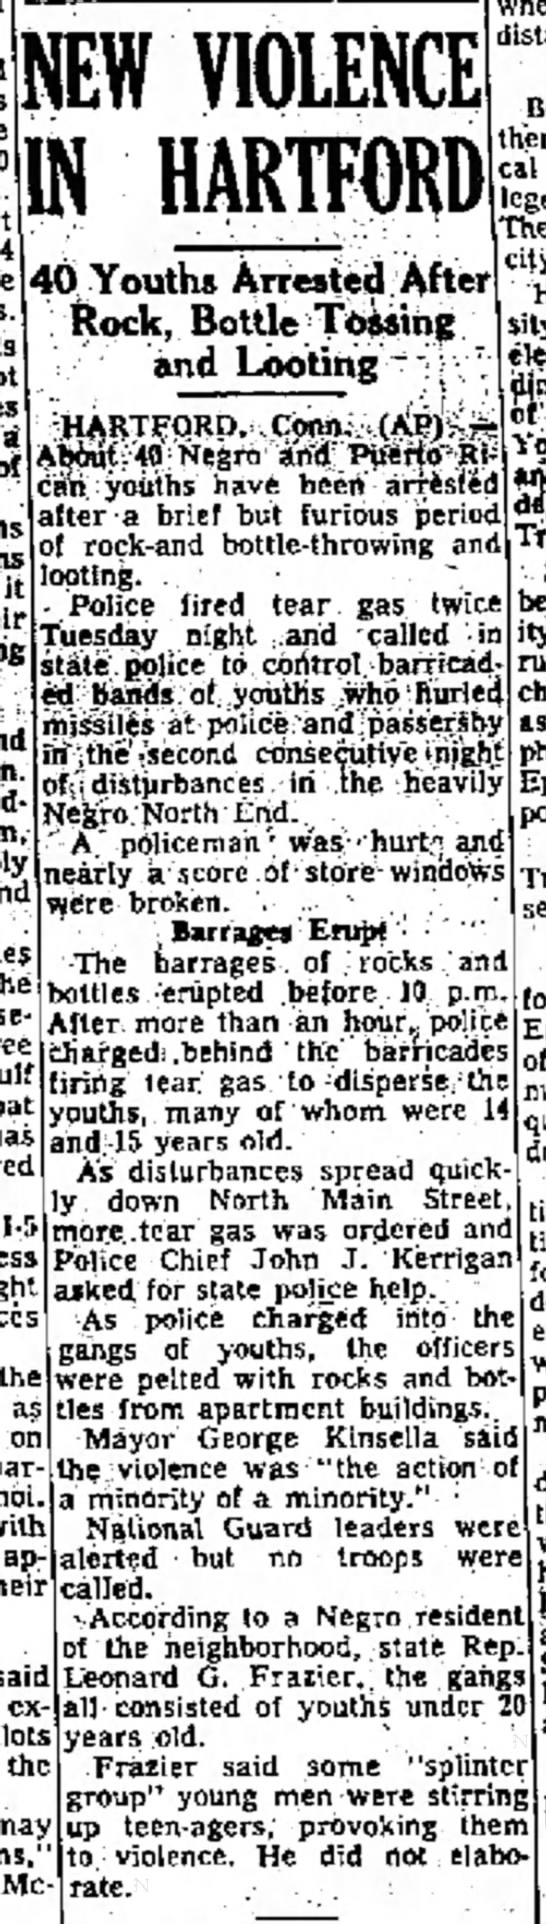 Clipped from The Bridgeport Post, 20 Sep 1967, Wed, Page 1